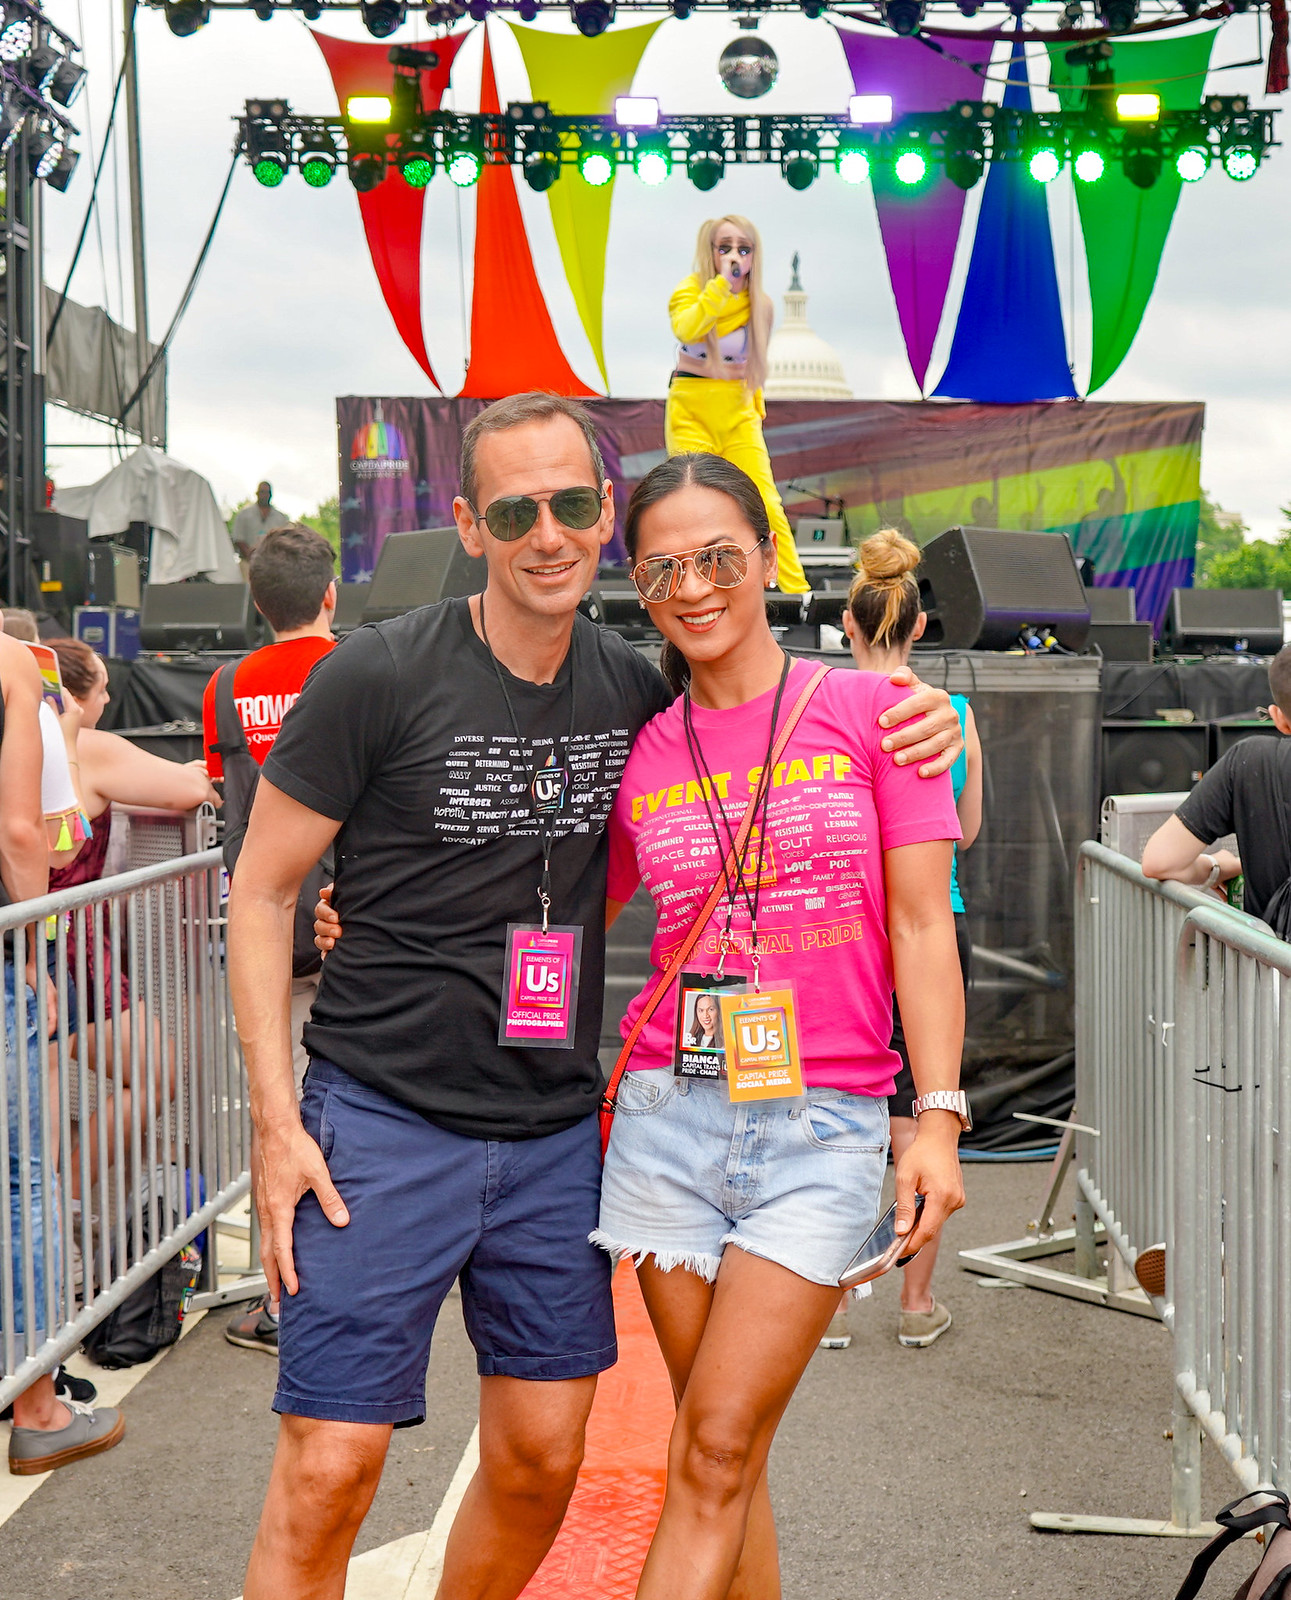 2018.06.10 Capital Pride Behind the Scenes and Closing with Sony A7III, Washington, DC USA03319